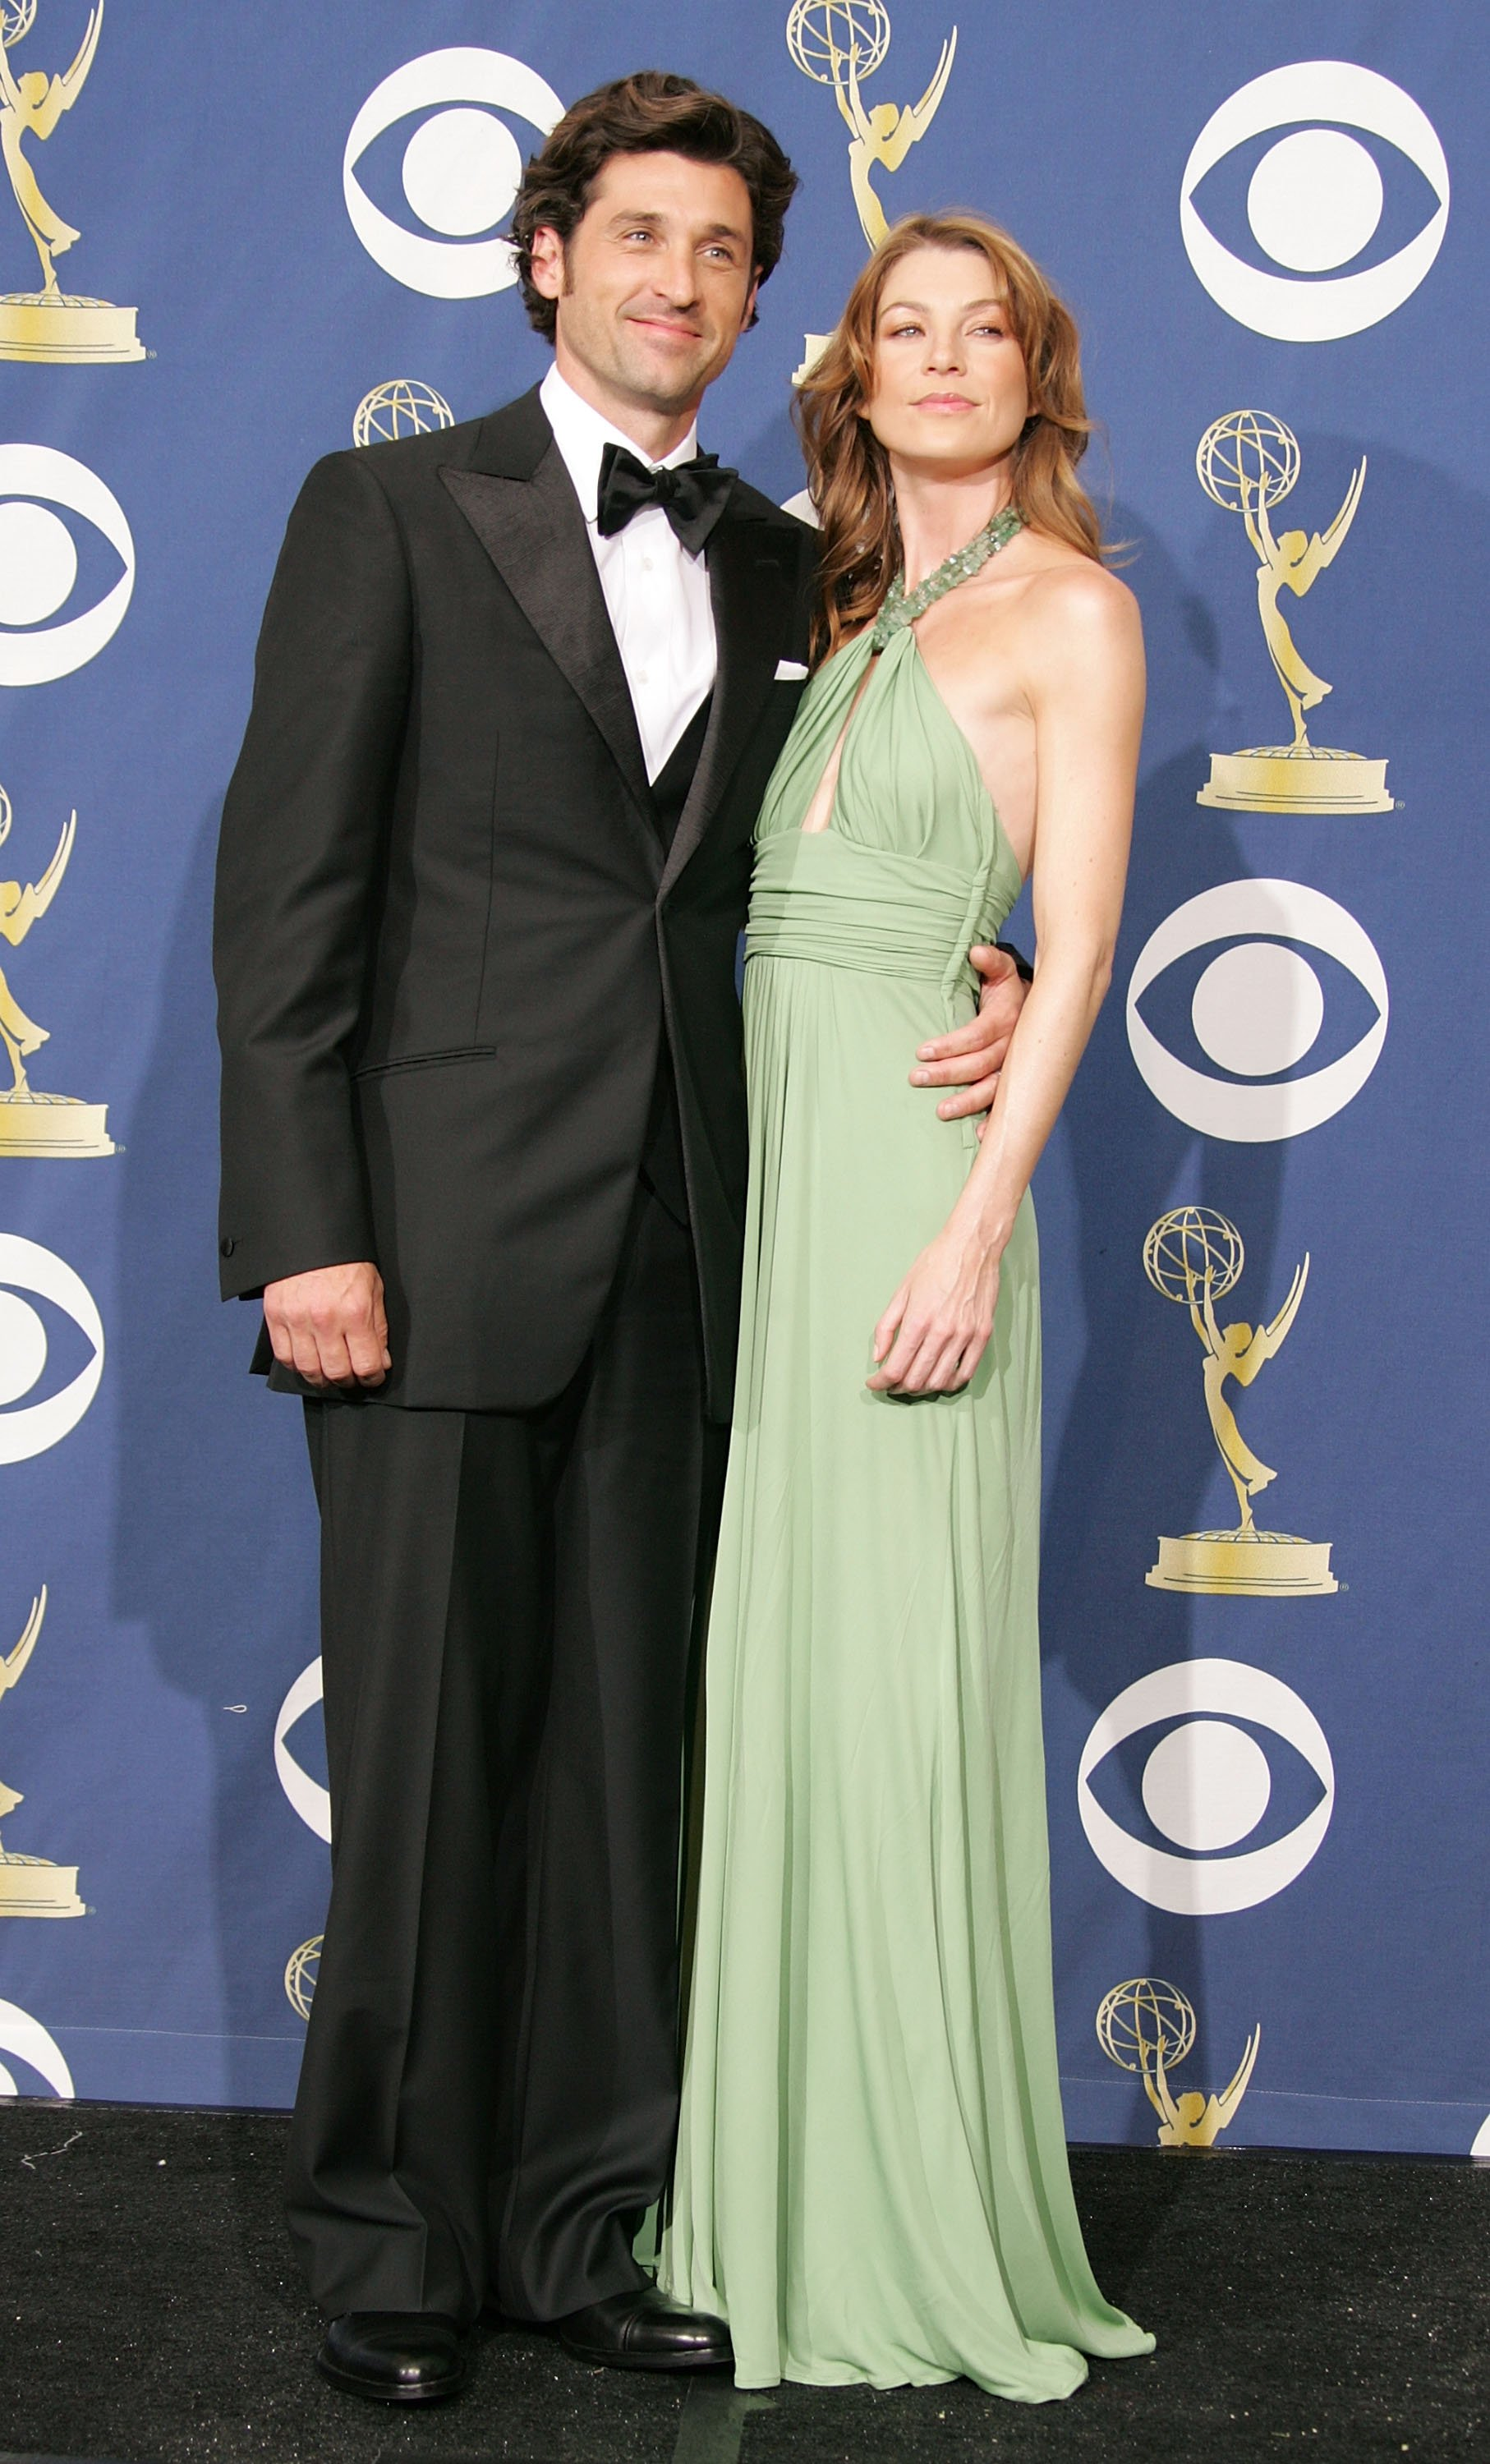 Patrick Dempsey and Ellen Pompeo pictured at the 57th Annual Emmy Awards, 2005, Los Angeles, California. | Photo: Getty Images